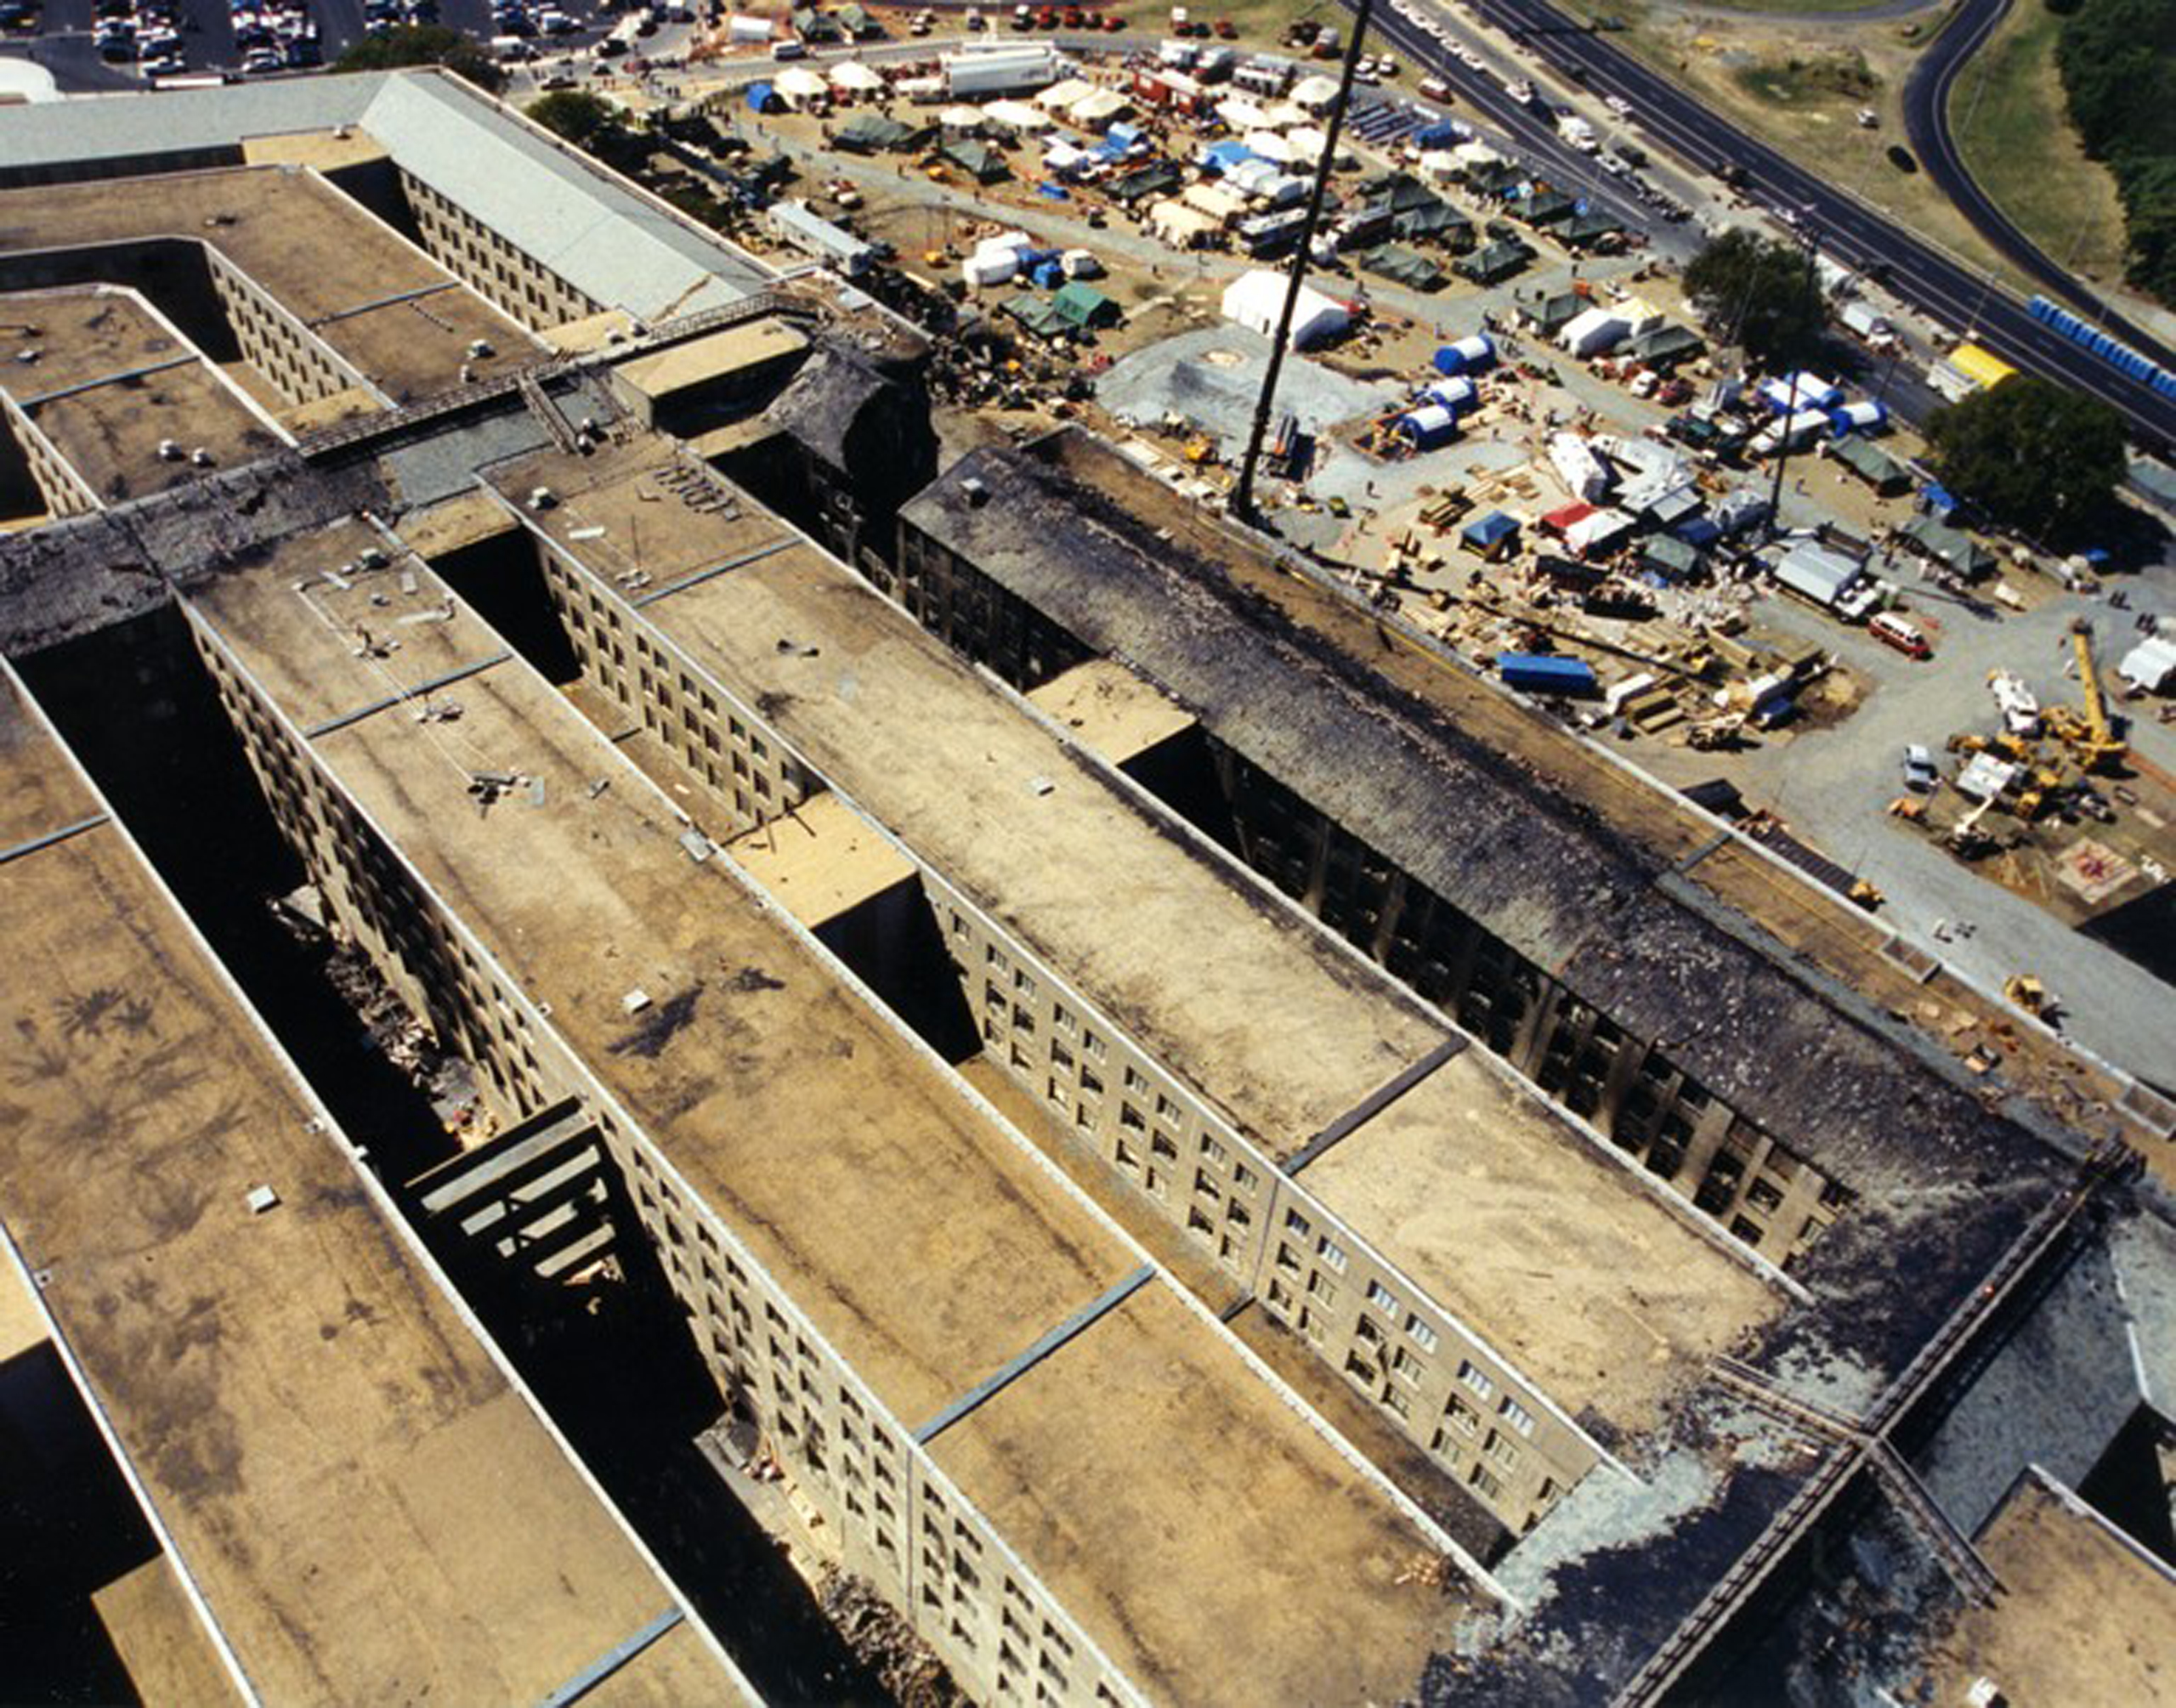 An overhead view of damage after the hijacked American Airlines Flight 77 crashed into the Pentagon in Arlington County, Virginia, on Sept. 11, 2001.